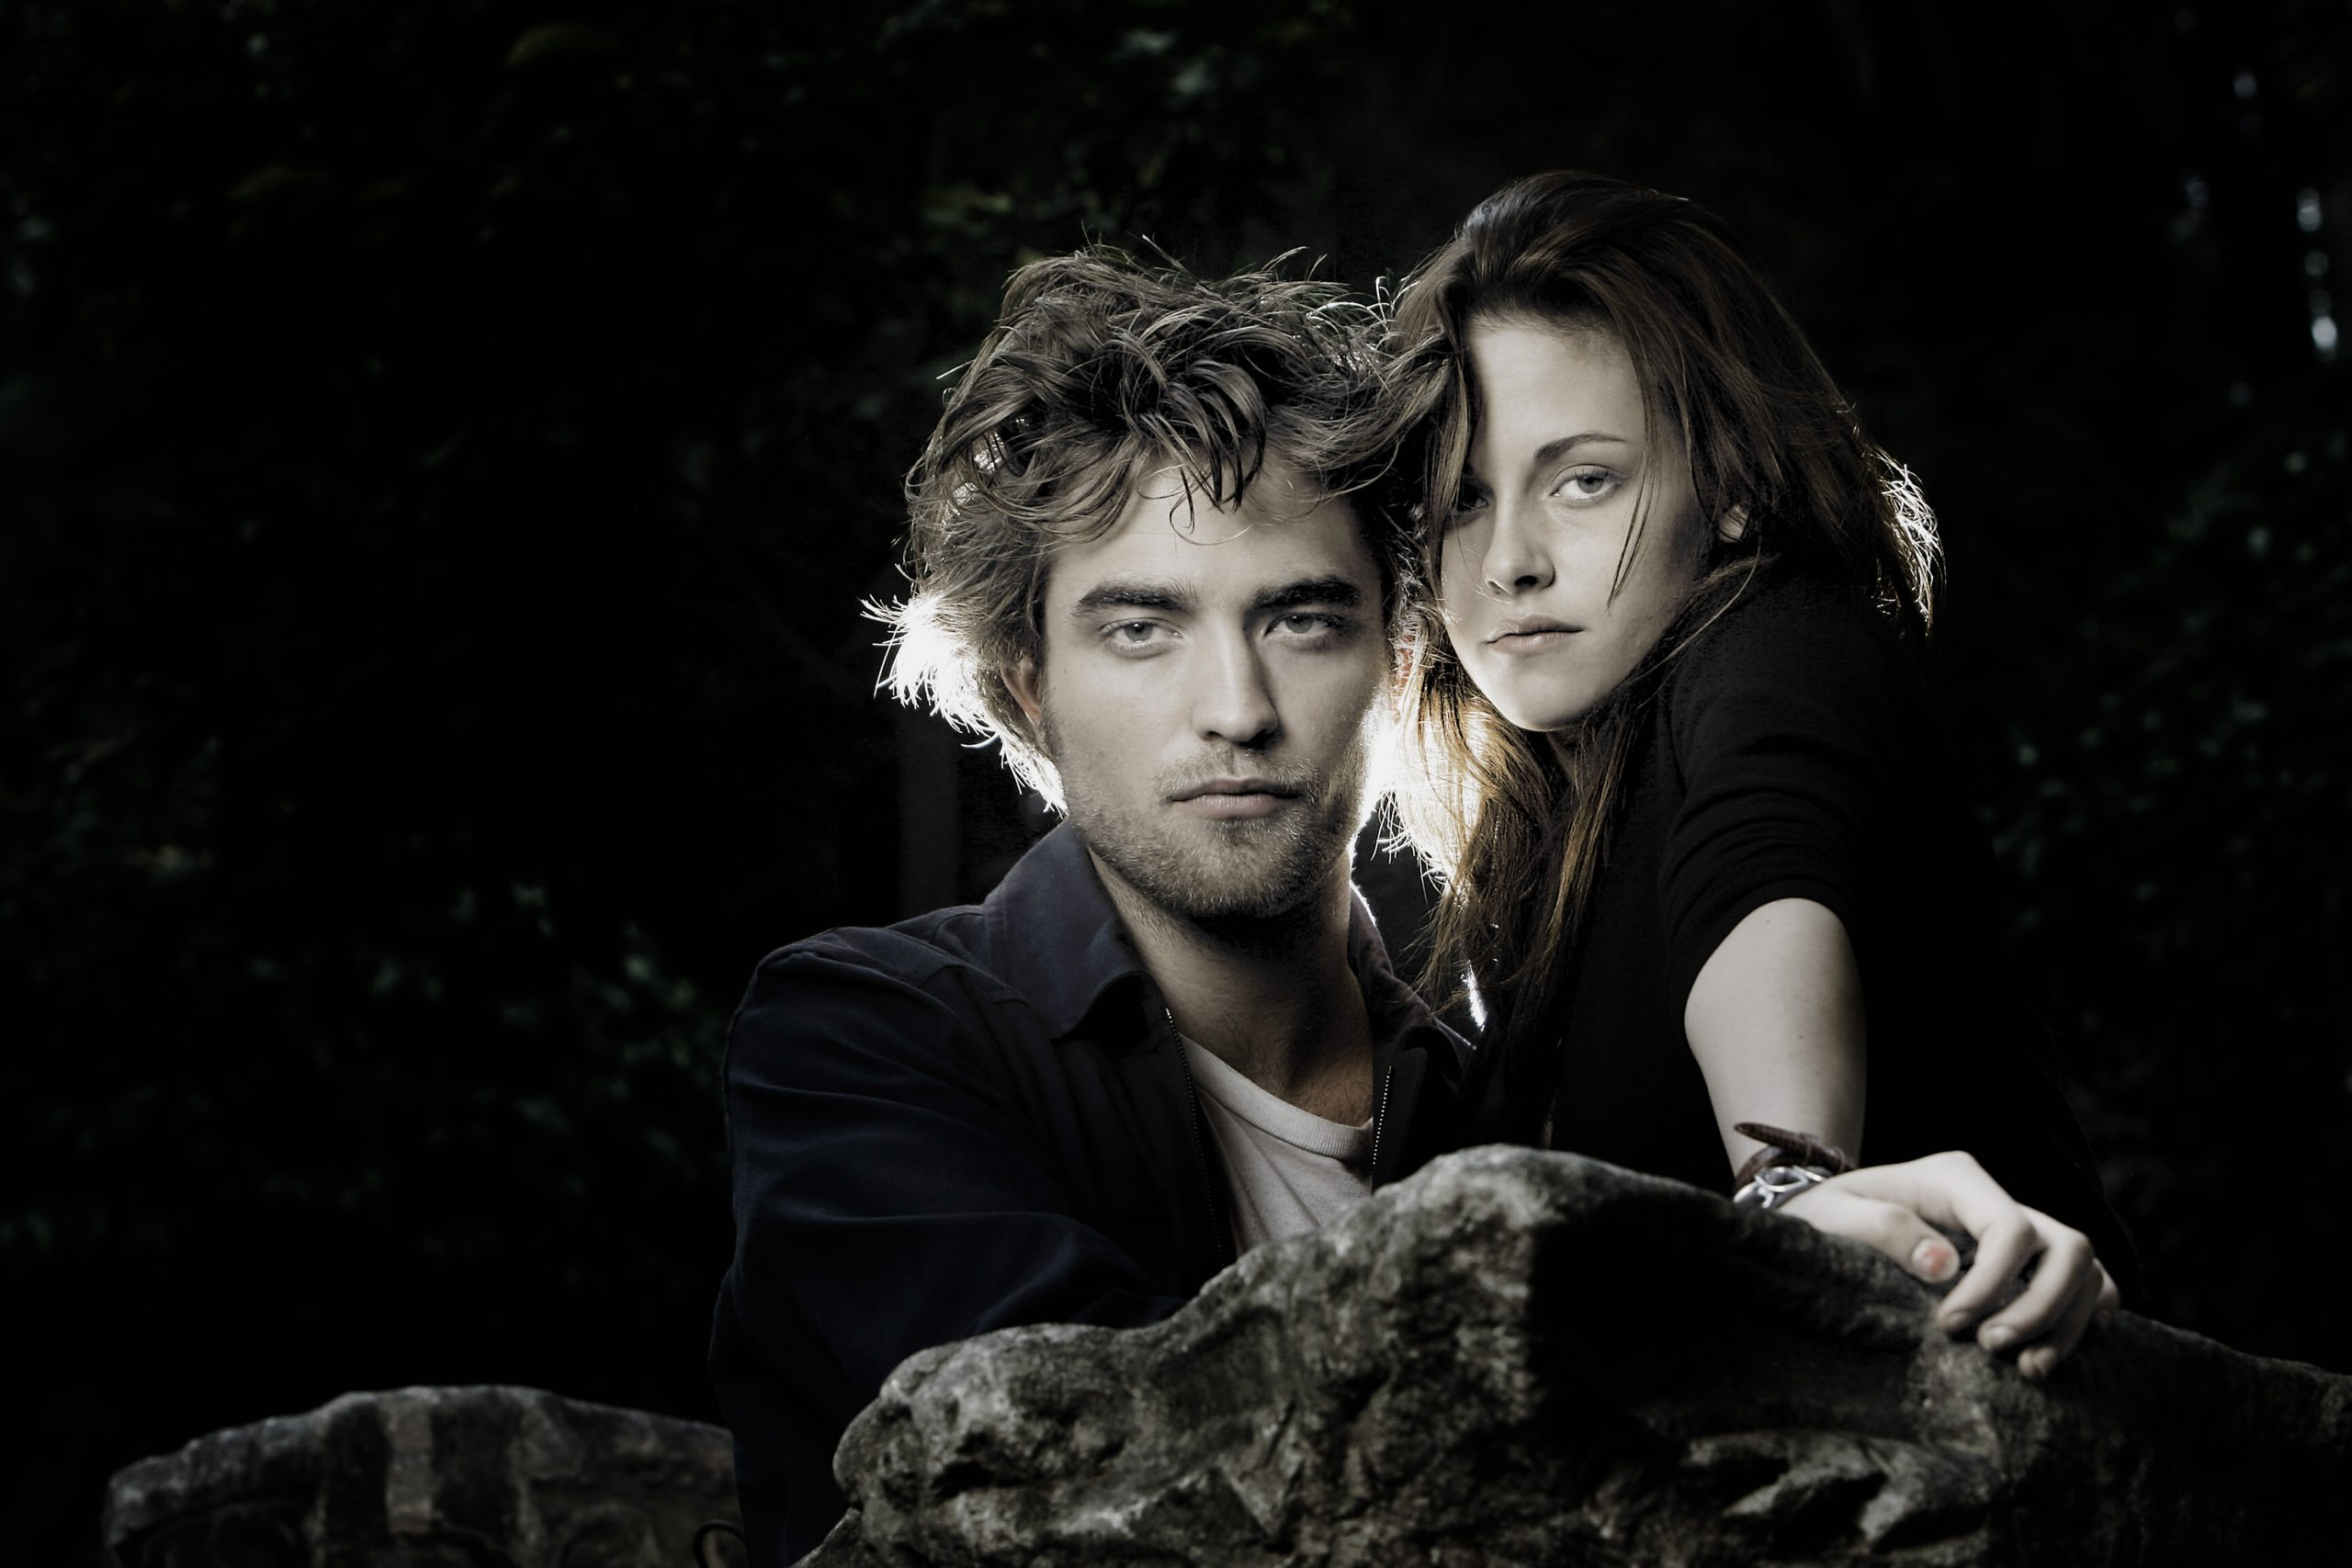 Robert Pattinson and Kristen Stewart pose for the 'Twilight' Portrait Session during the 3rd Rome International Film Festival on October 31, 2008 in Rome, Italy.